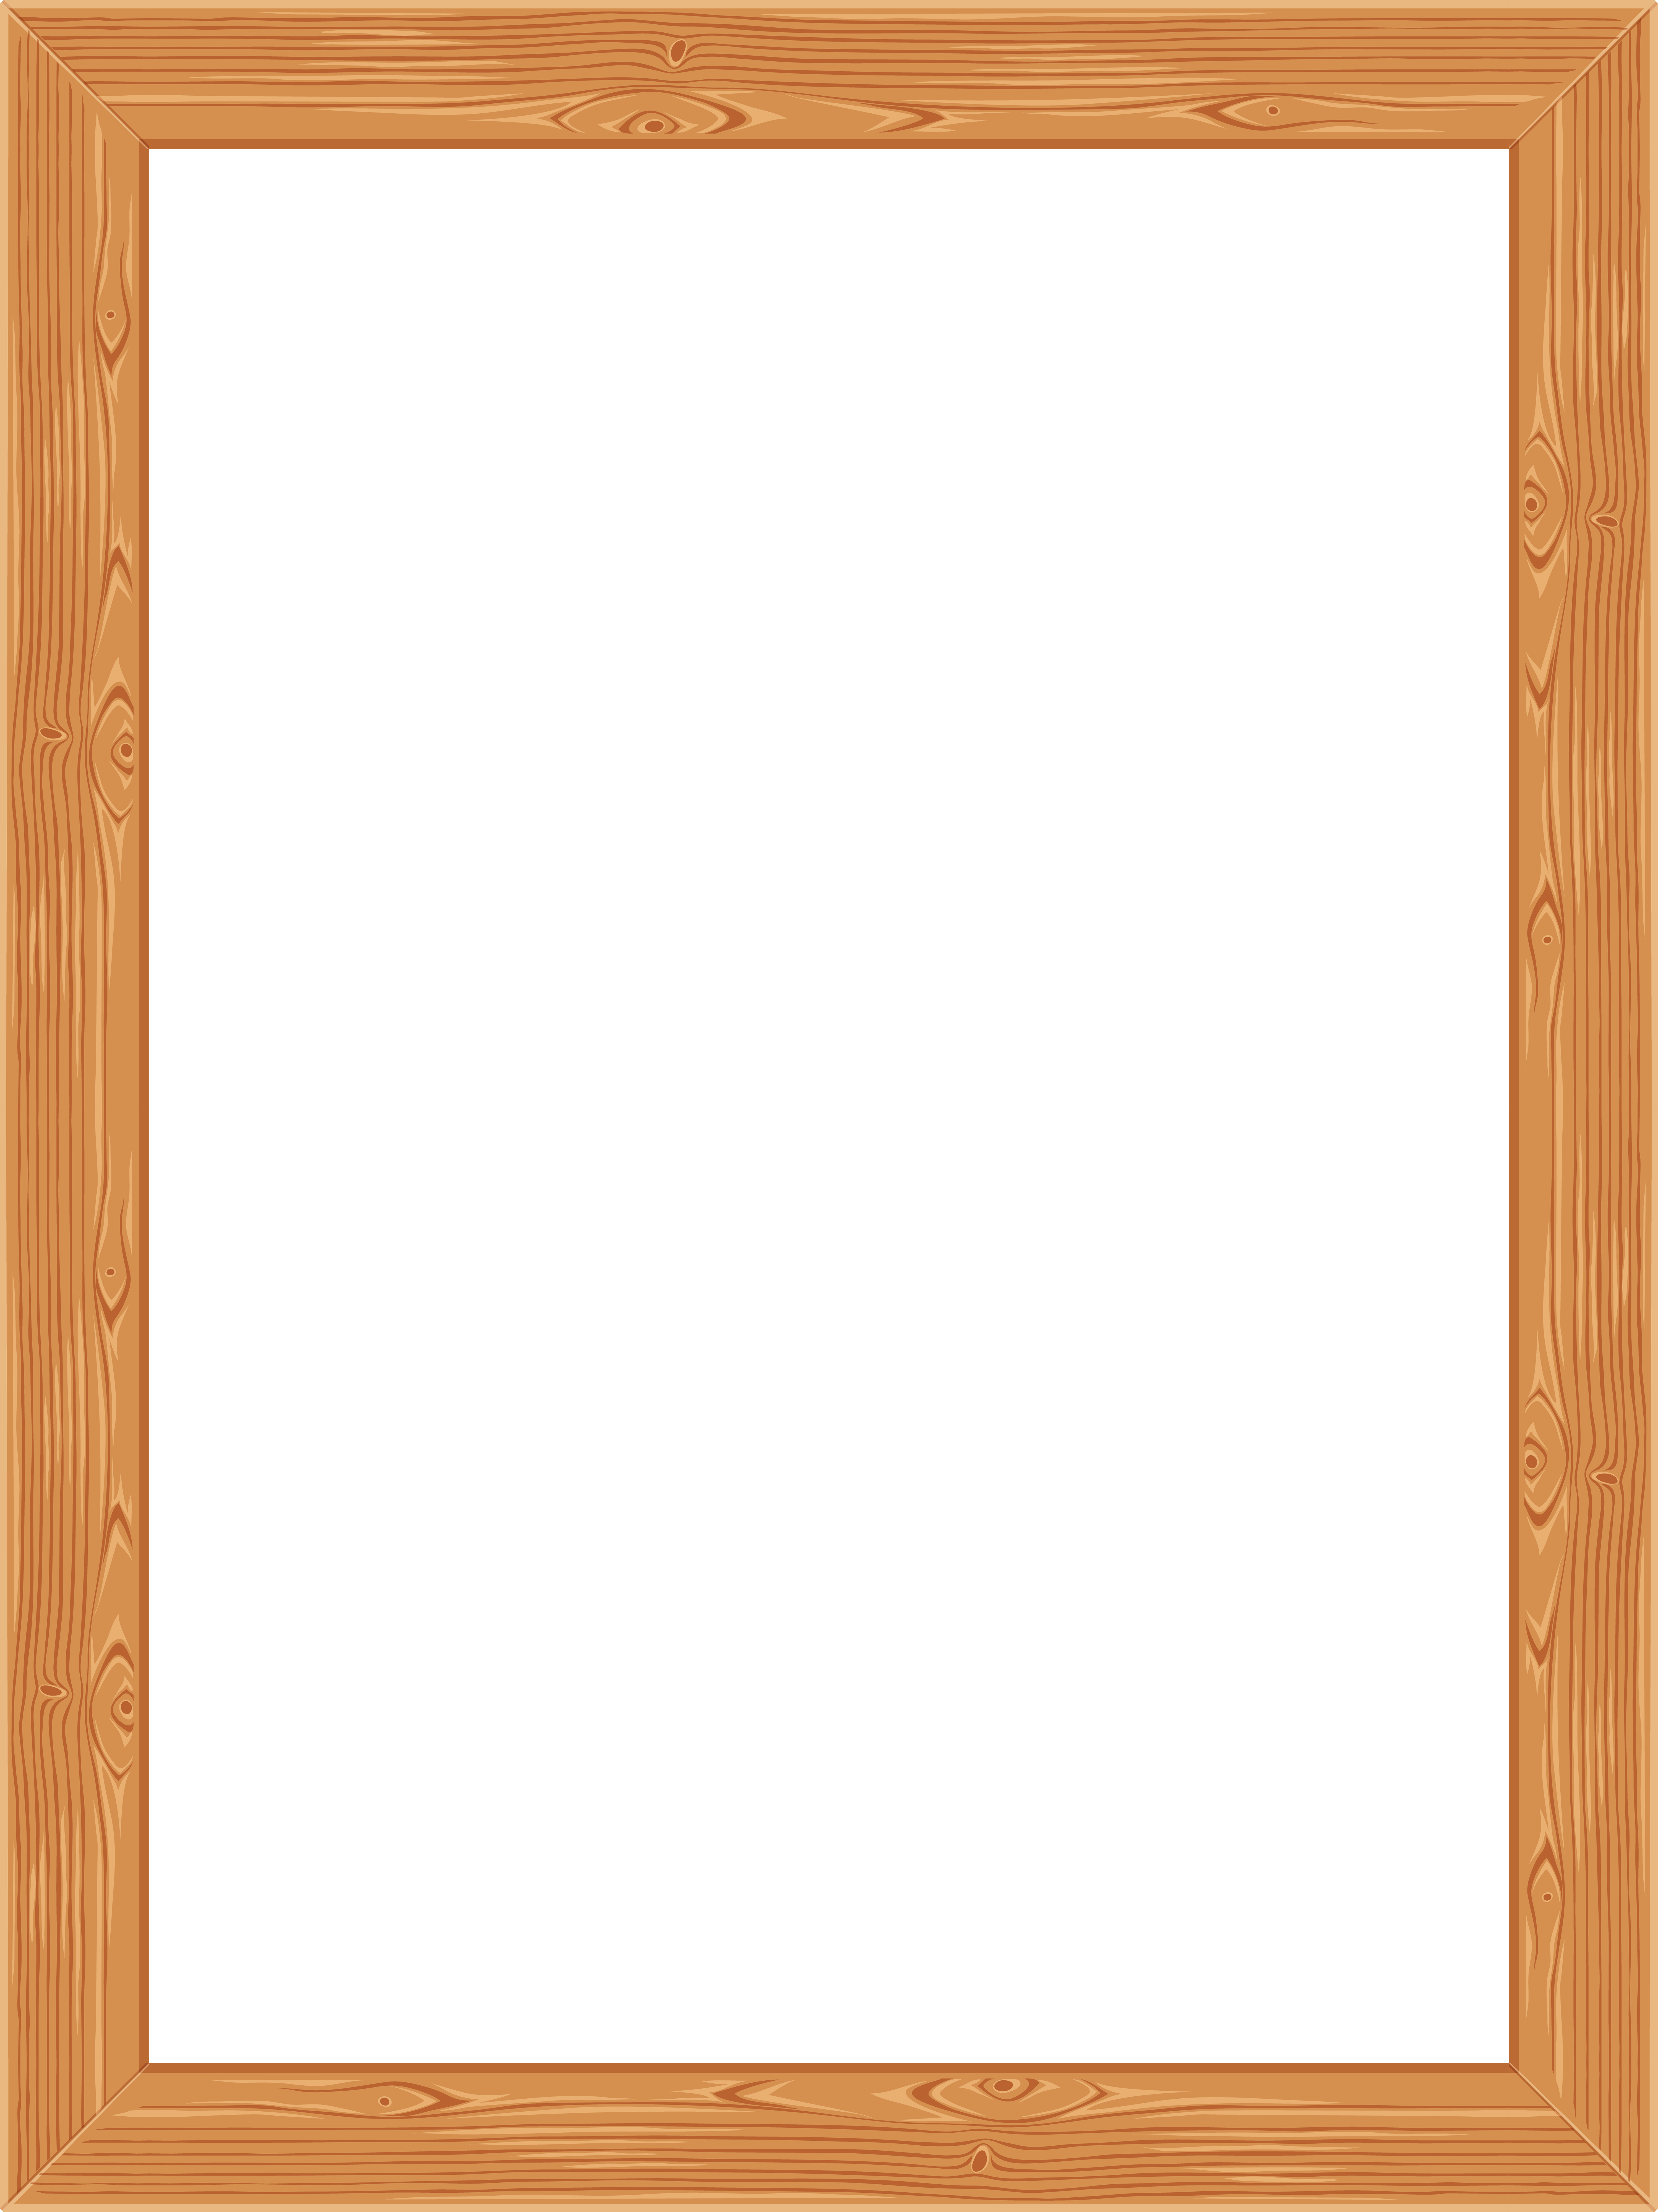 Transparent Classic Wooden Frame PNG Image.